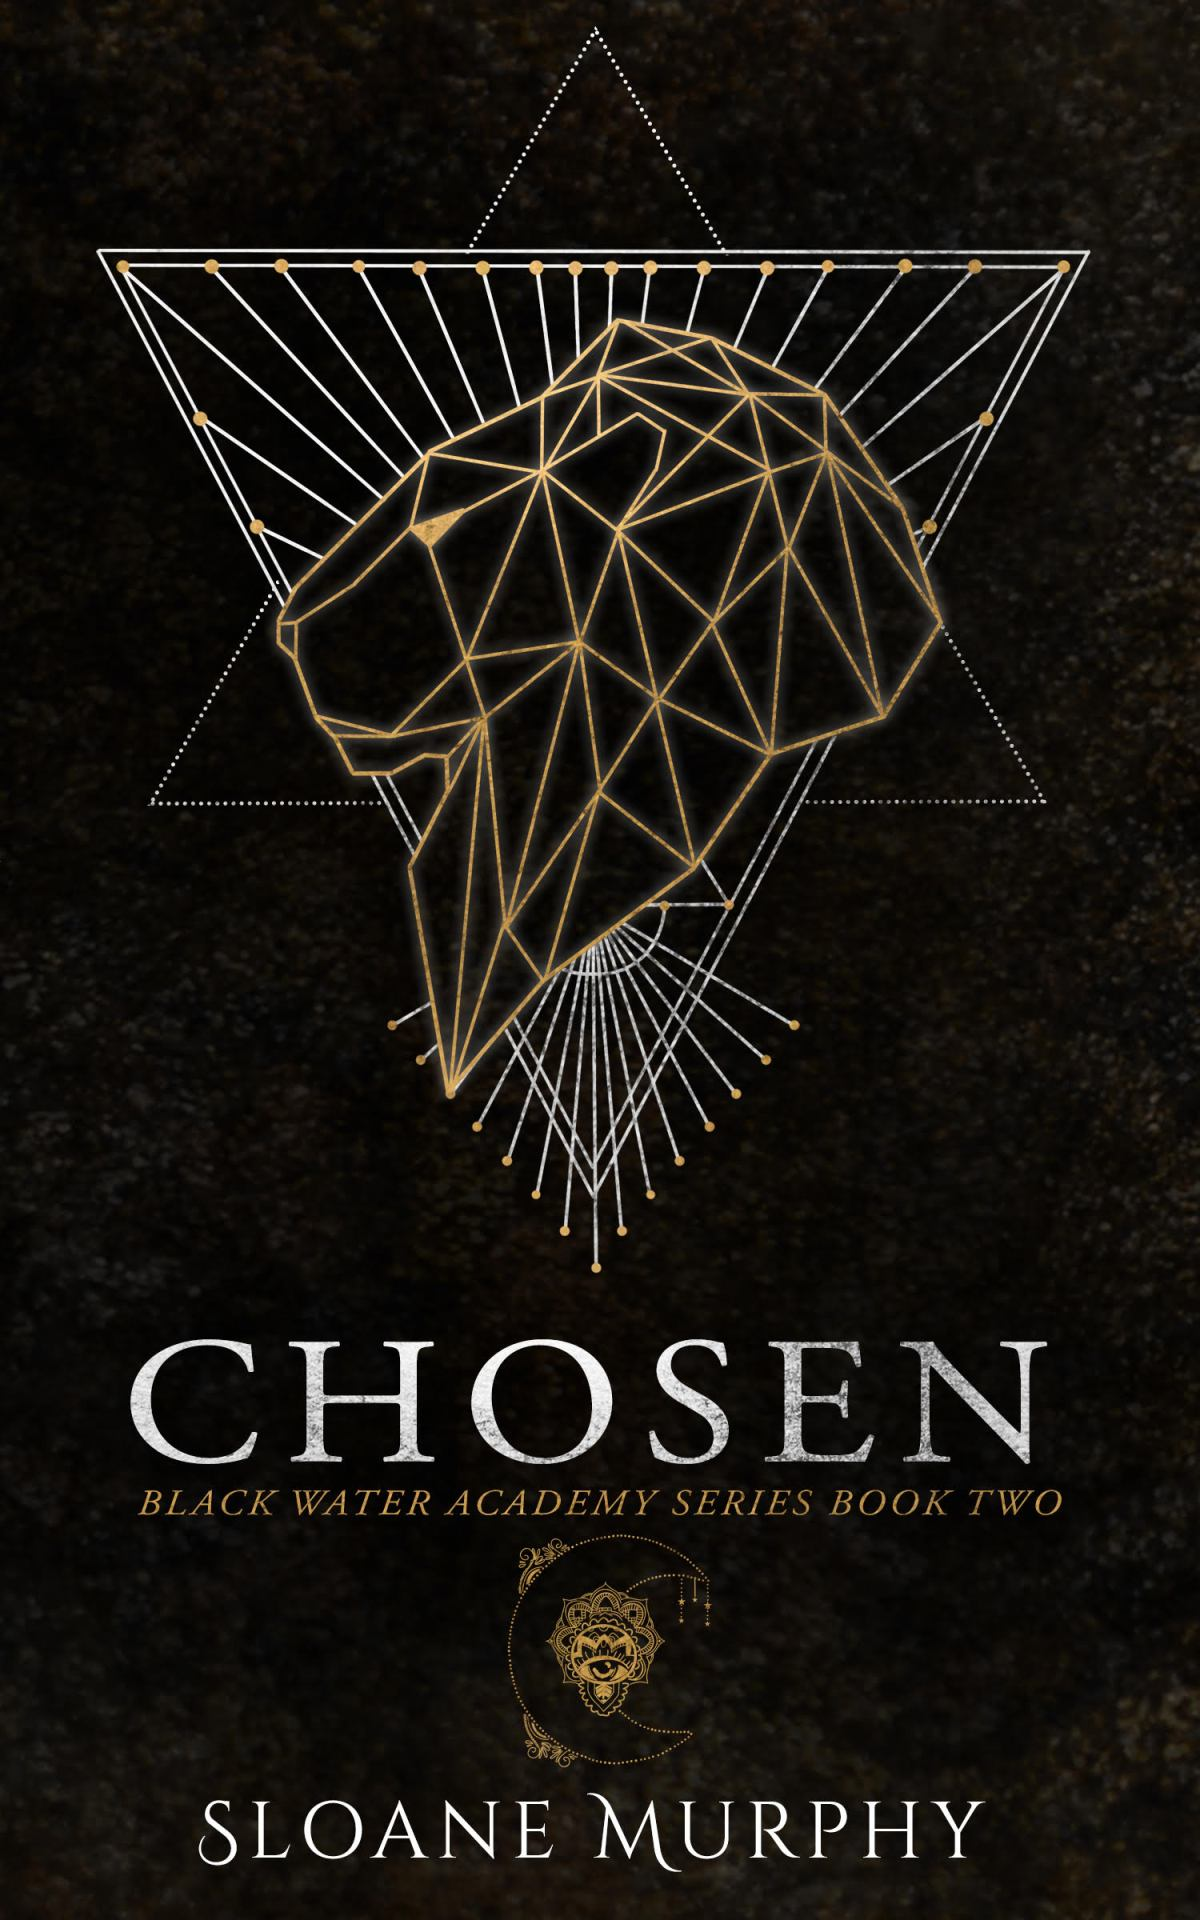 Cover Reveal and Blurb: Chosen (Blackwater Academy #2) by Sloane Murphy